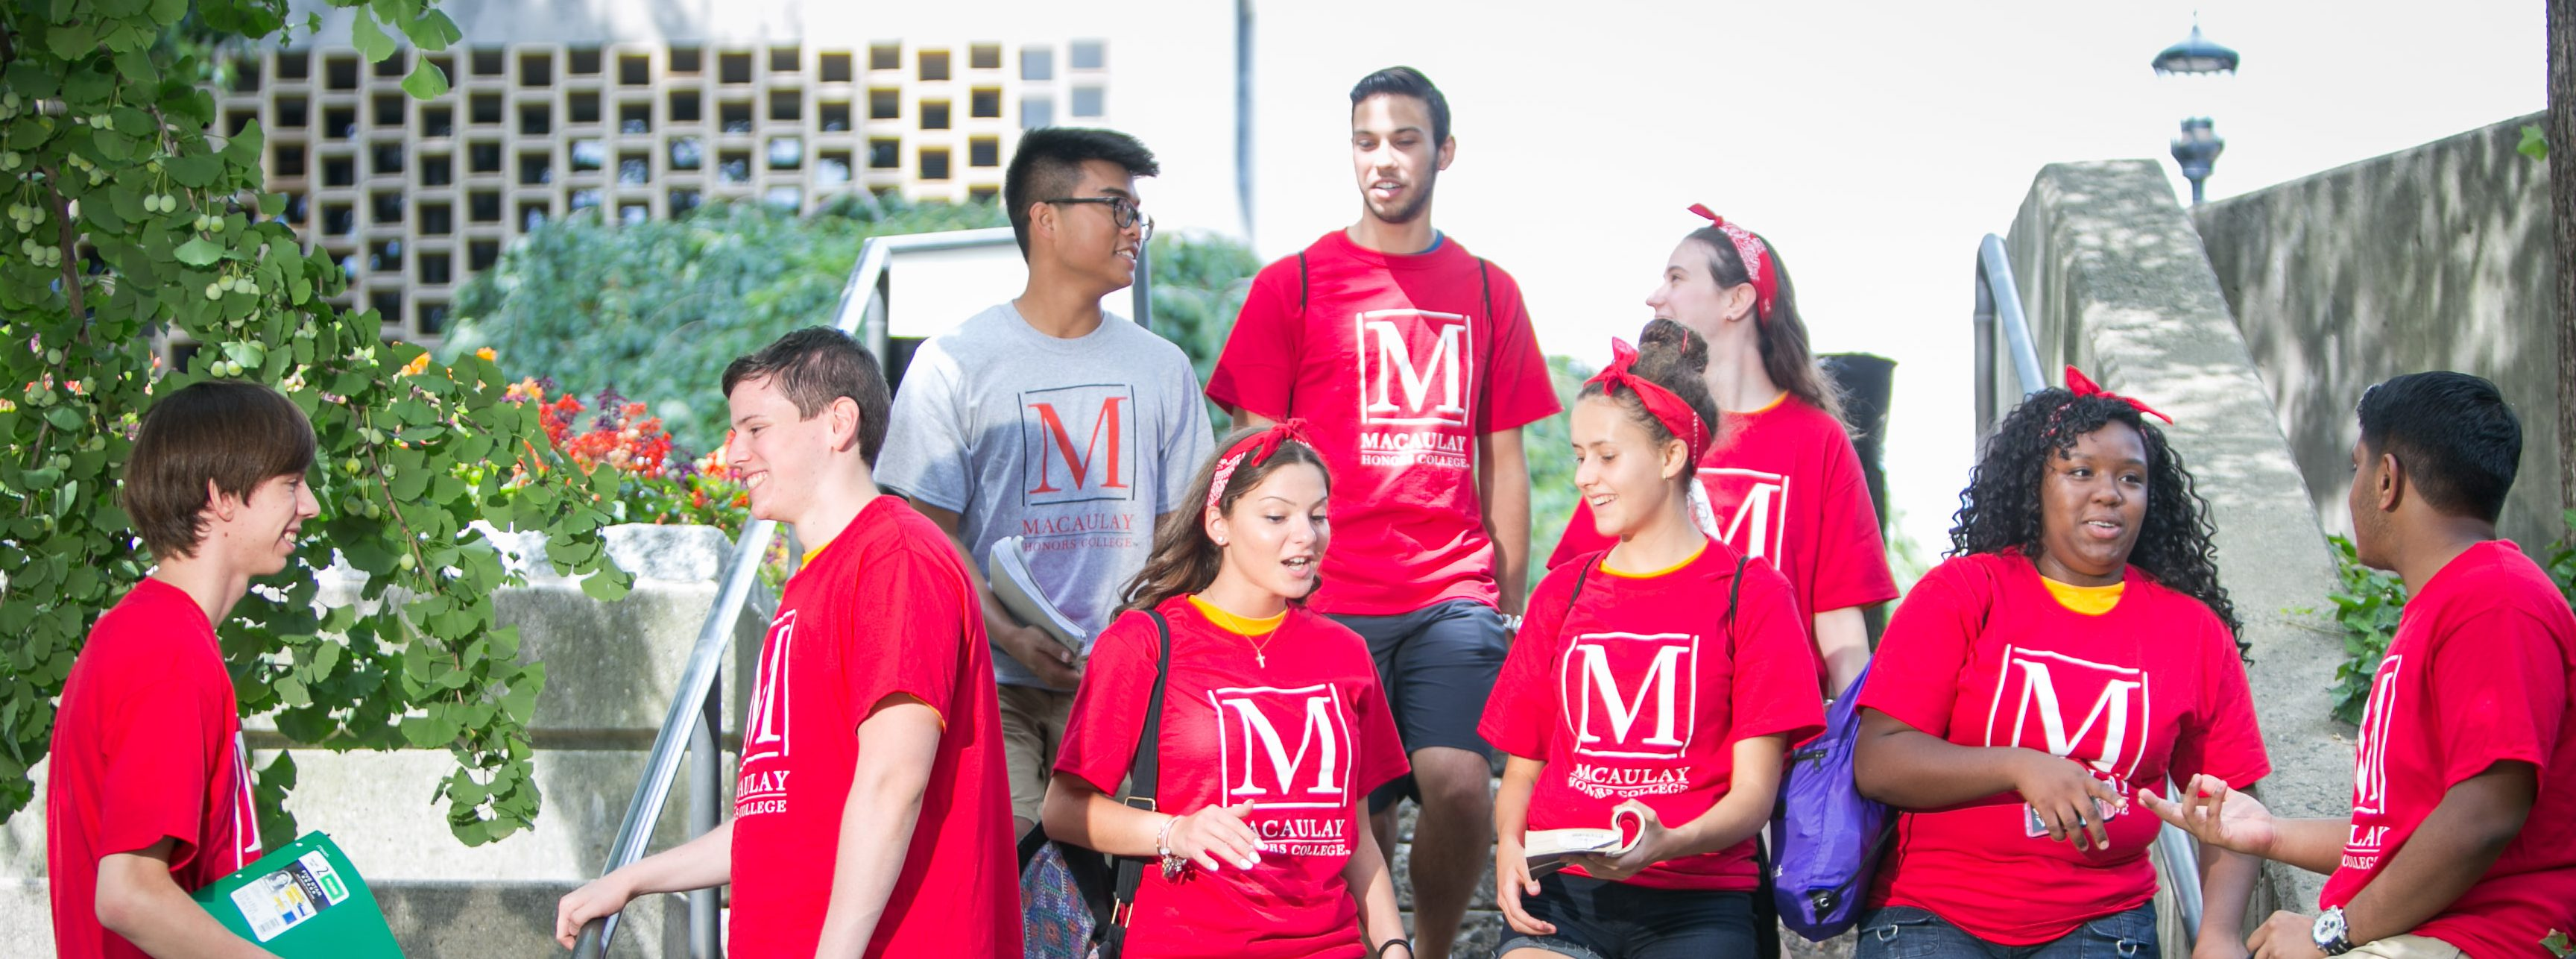 Macaulay Students at Orientation 2015